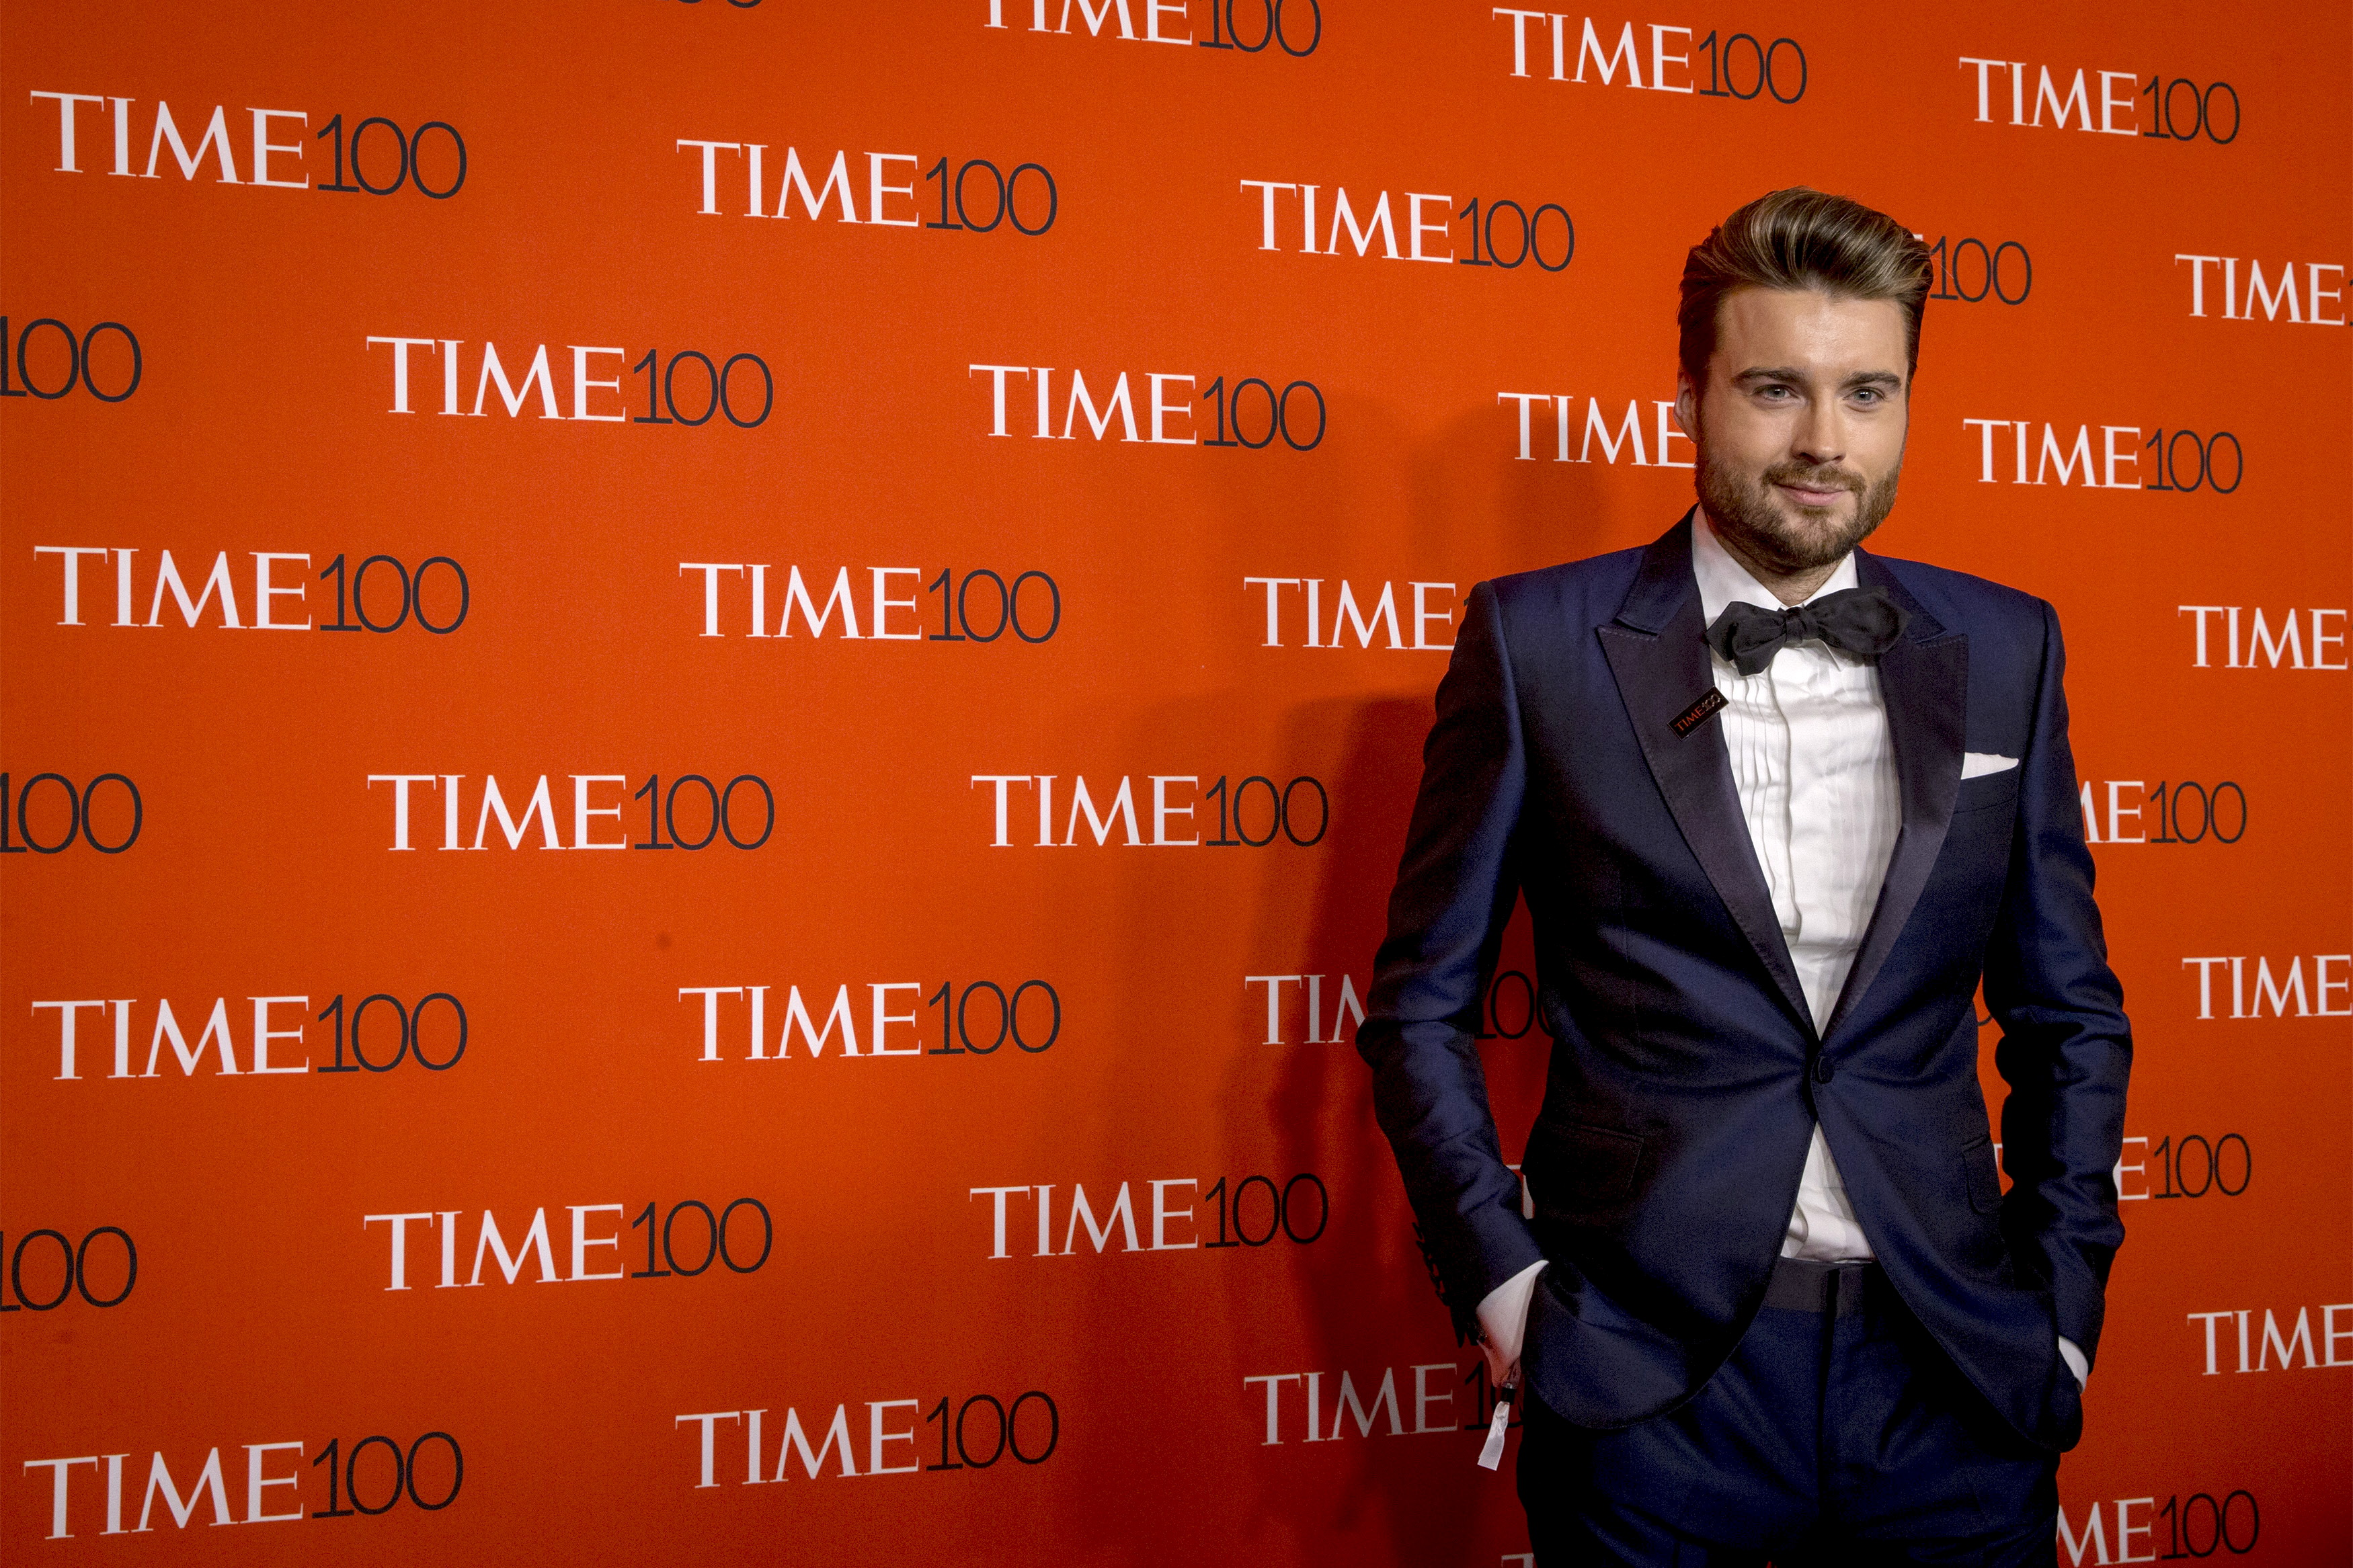 CEO and Founder of Mashable, Pete Cashmore arrives for the TIME 100 Gala in New York